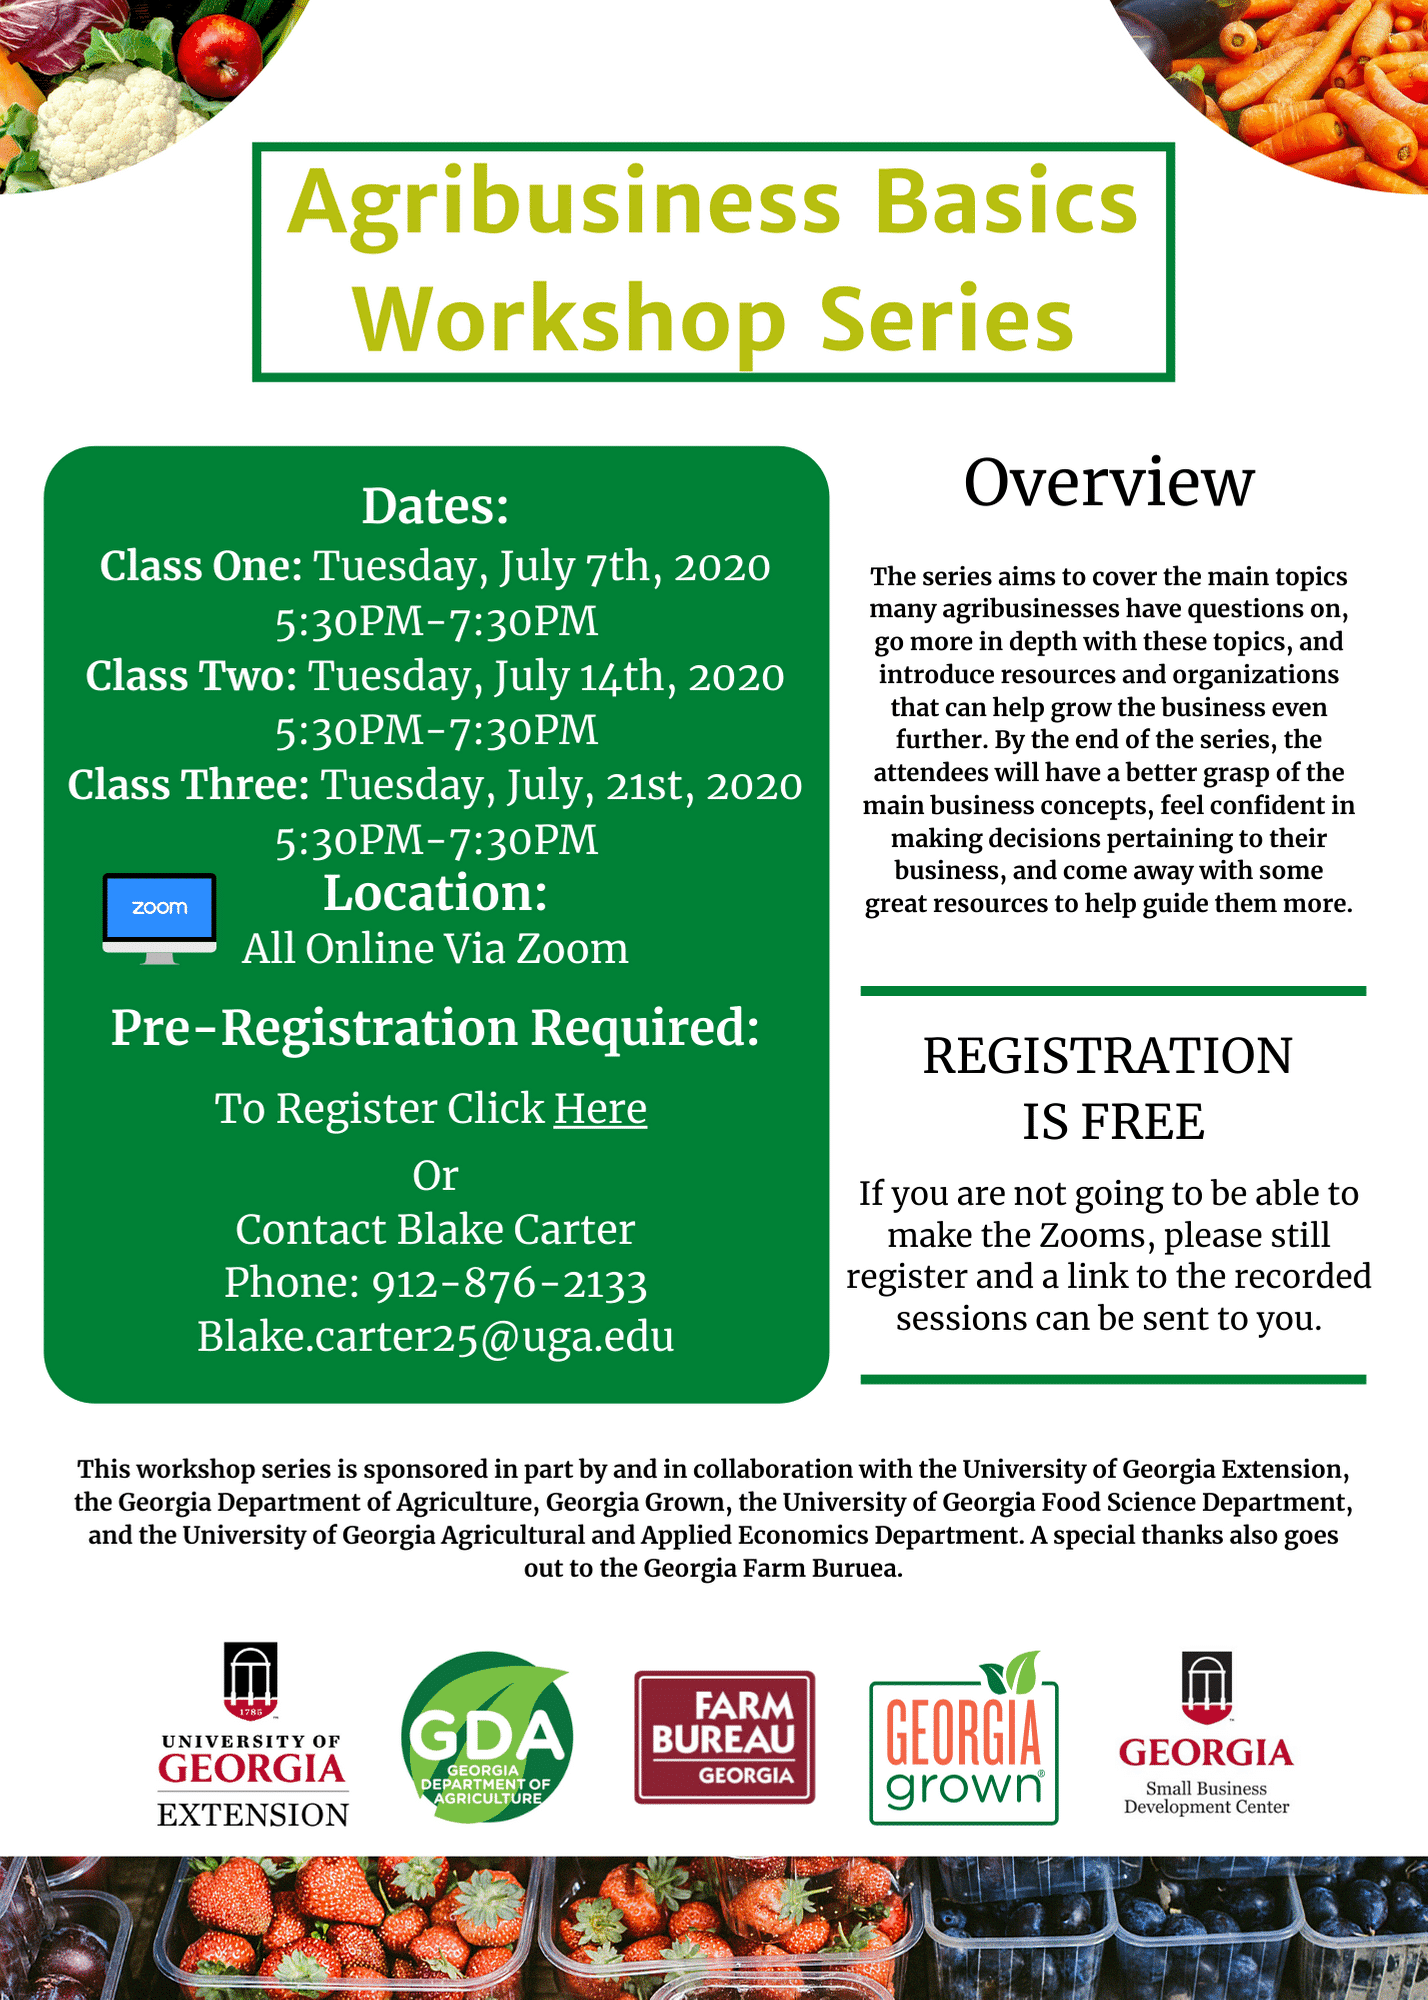 Agribusiness Basics Workshop Series